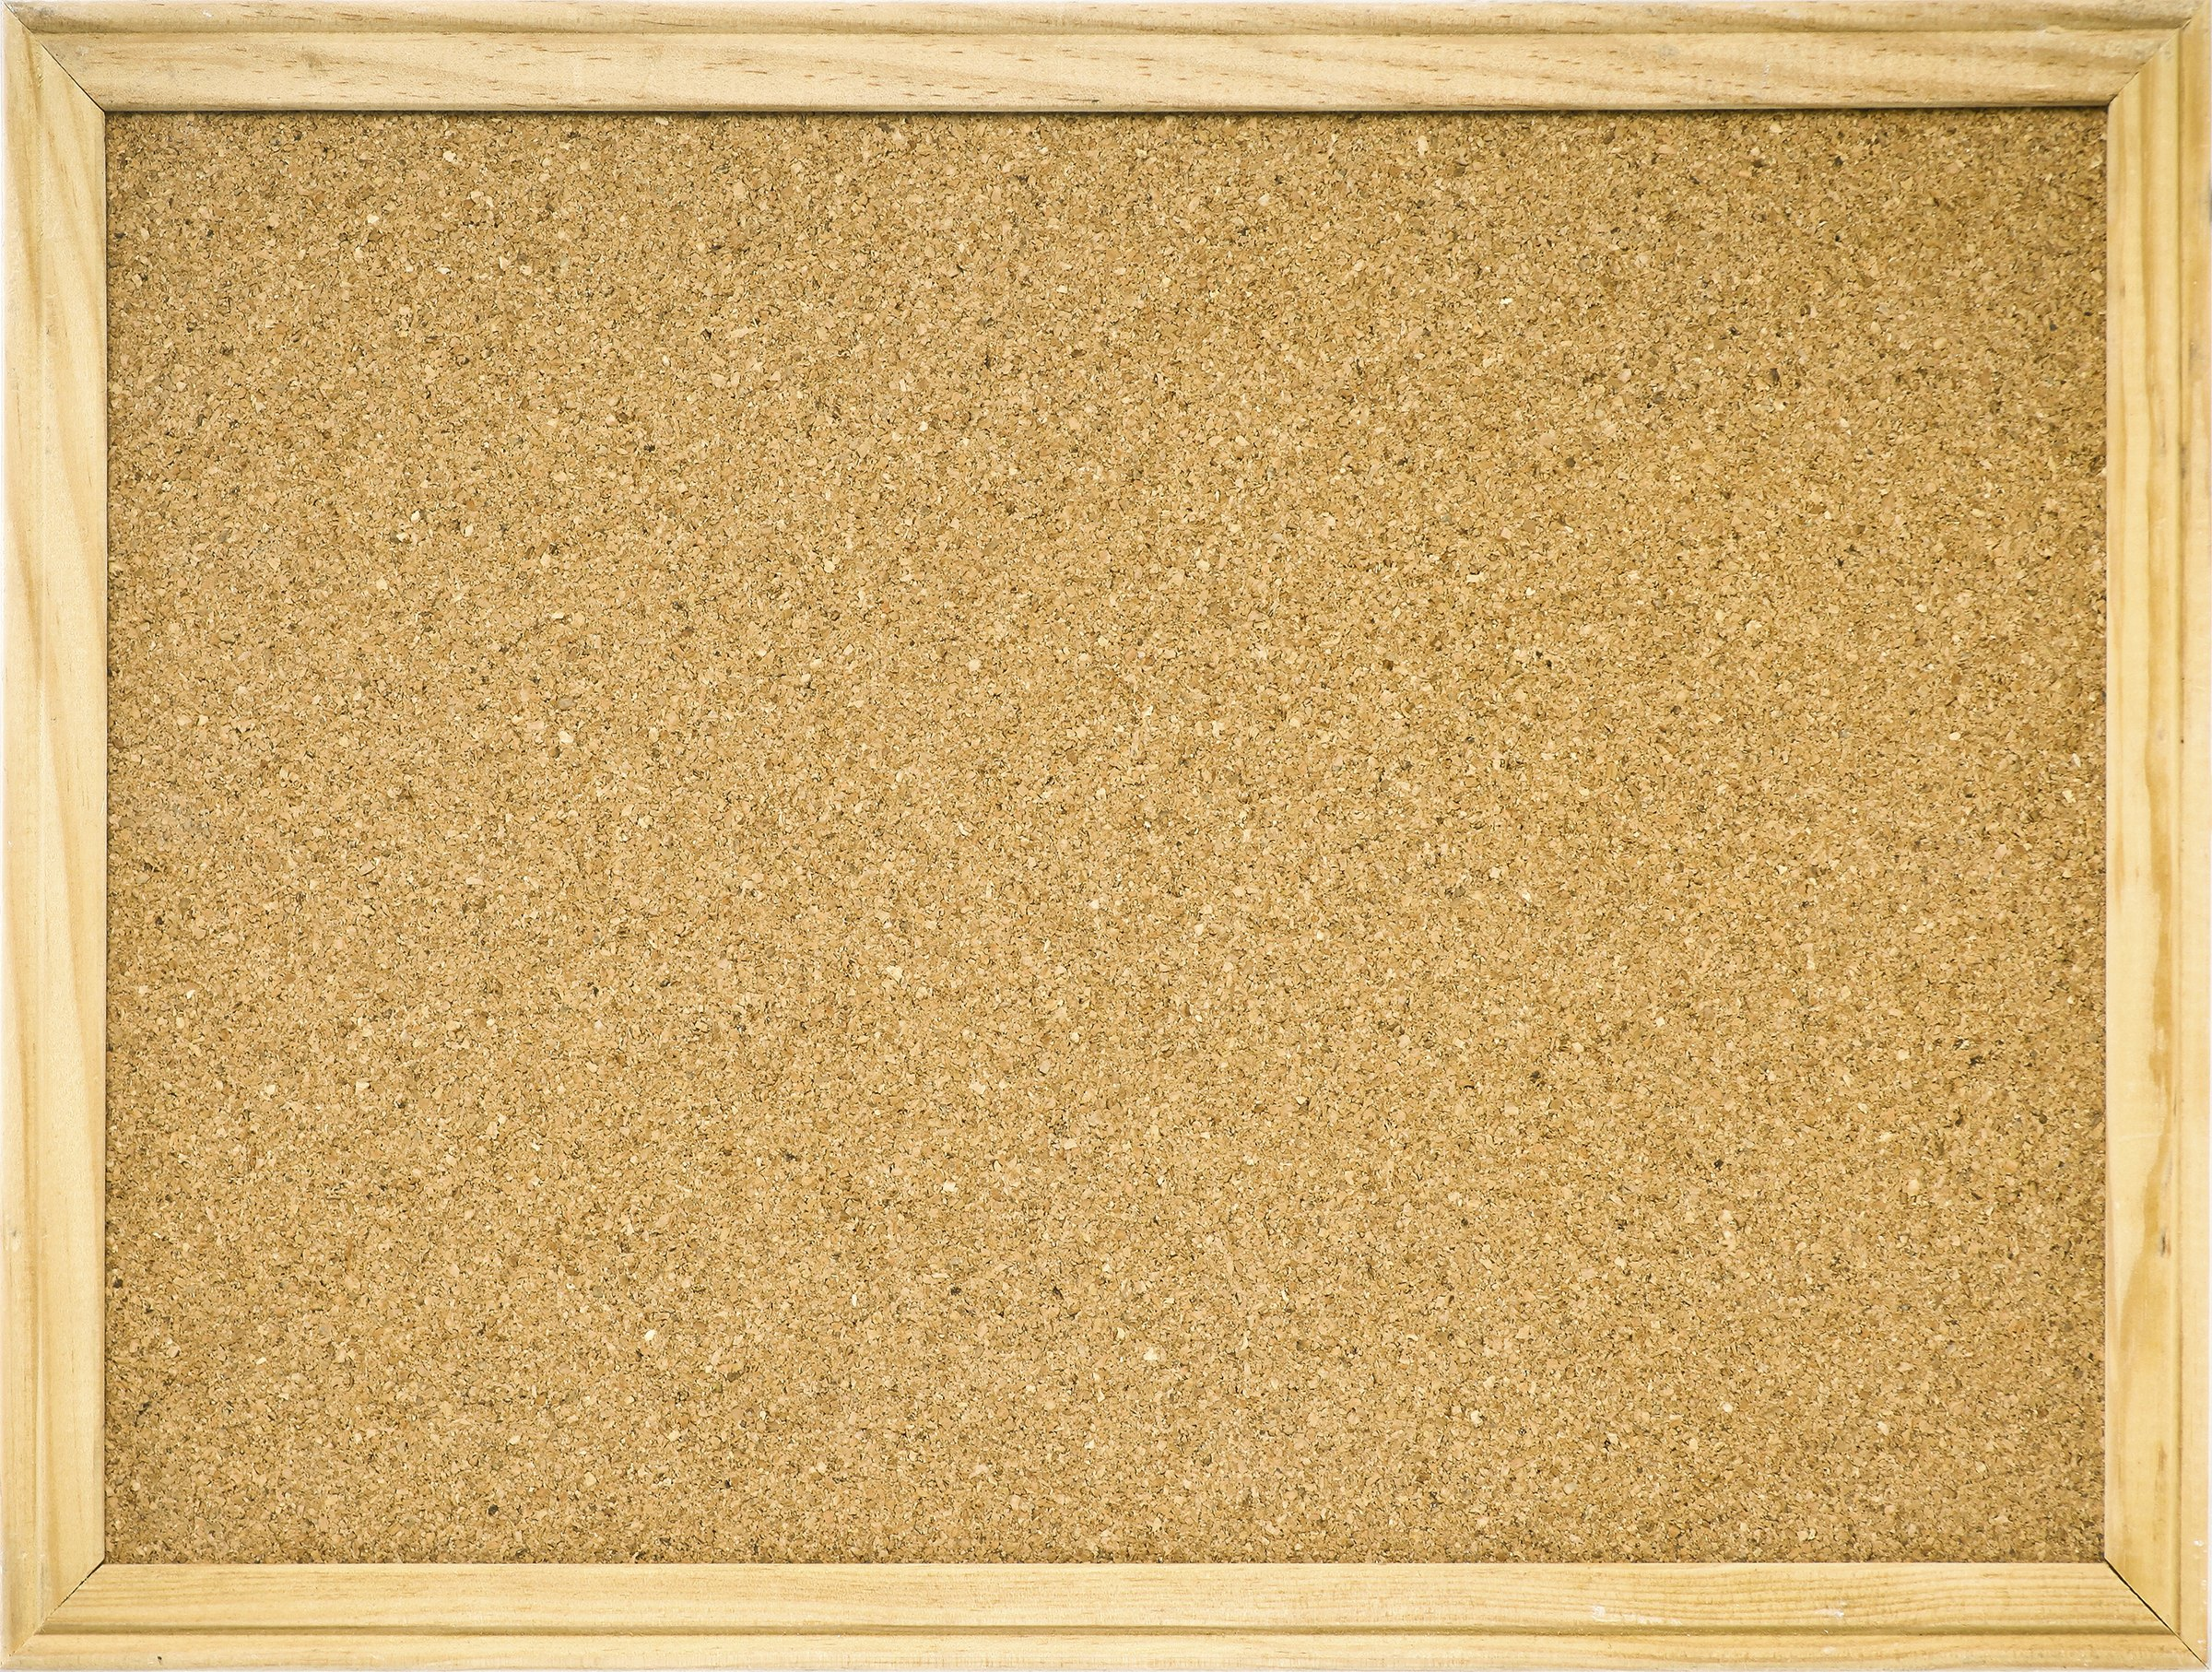 How to Cover a Corkboard With Fabric | eHow